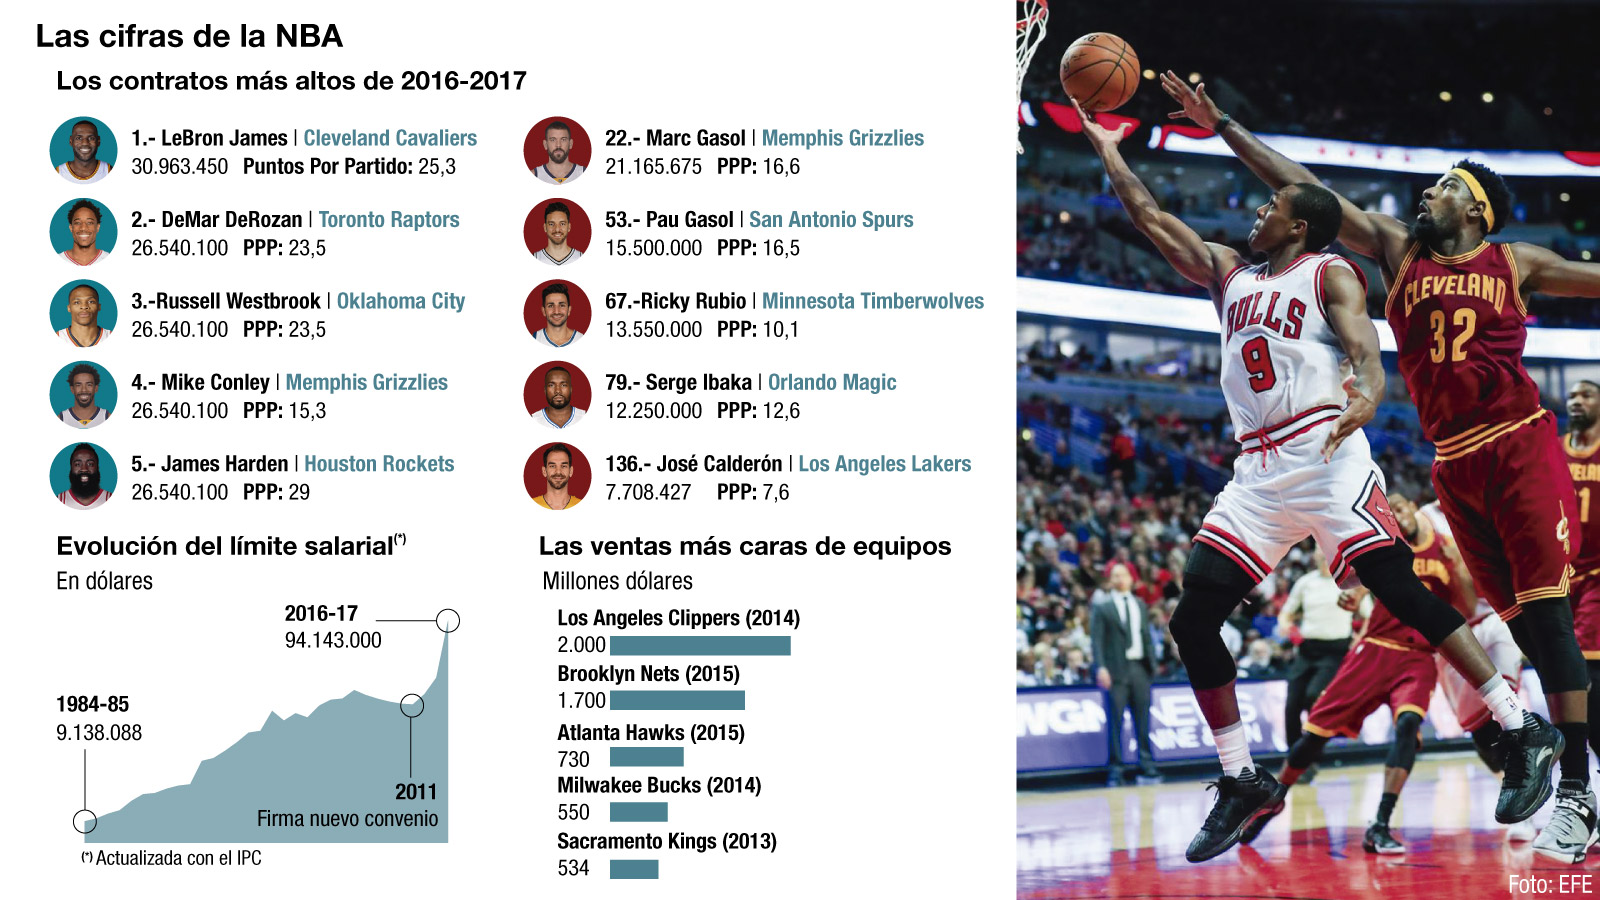 Fuente: Basketball Reference / NBA